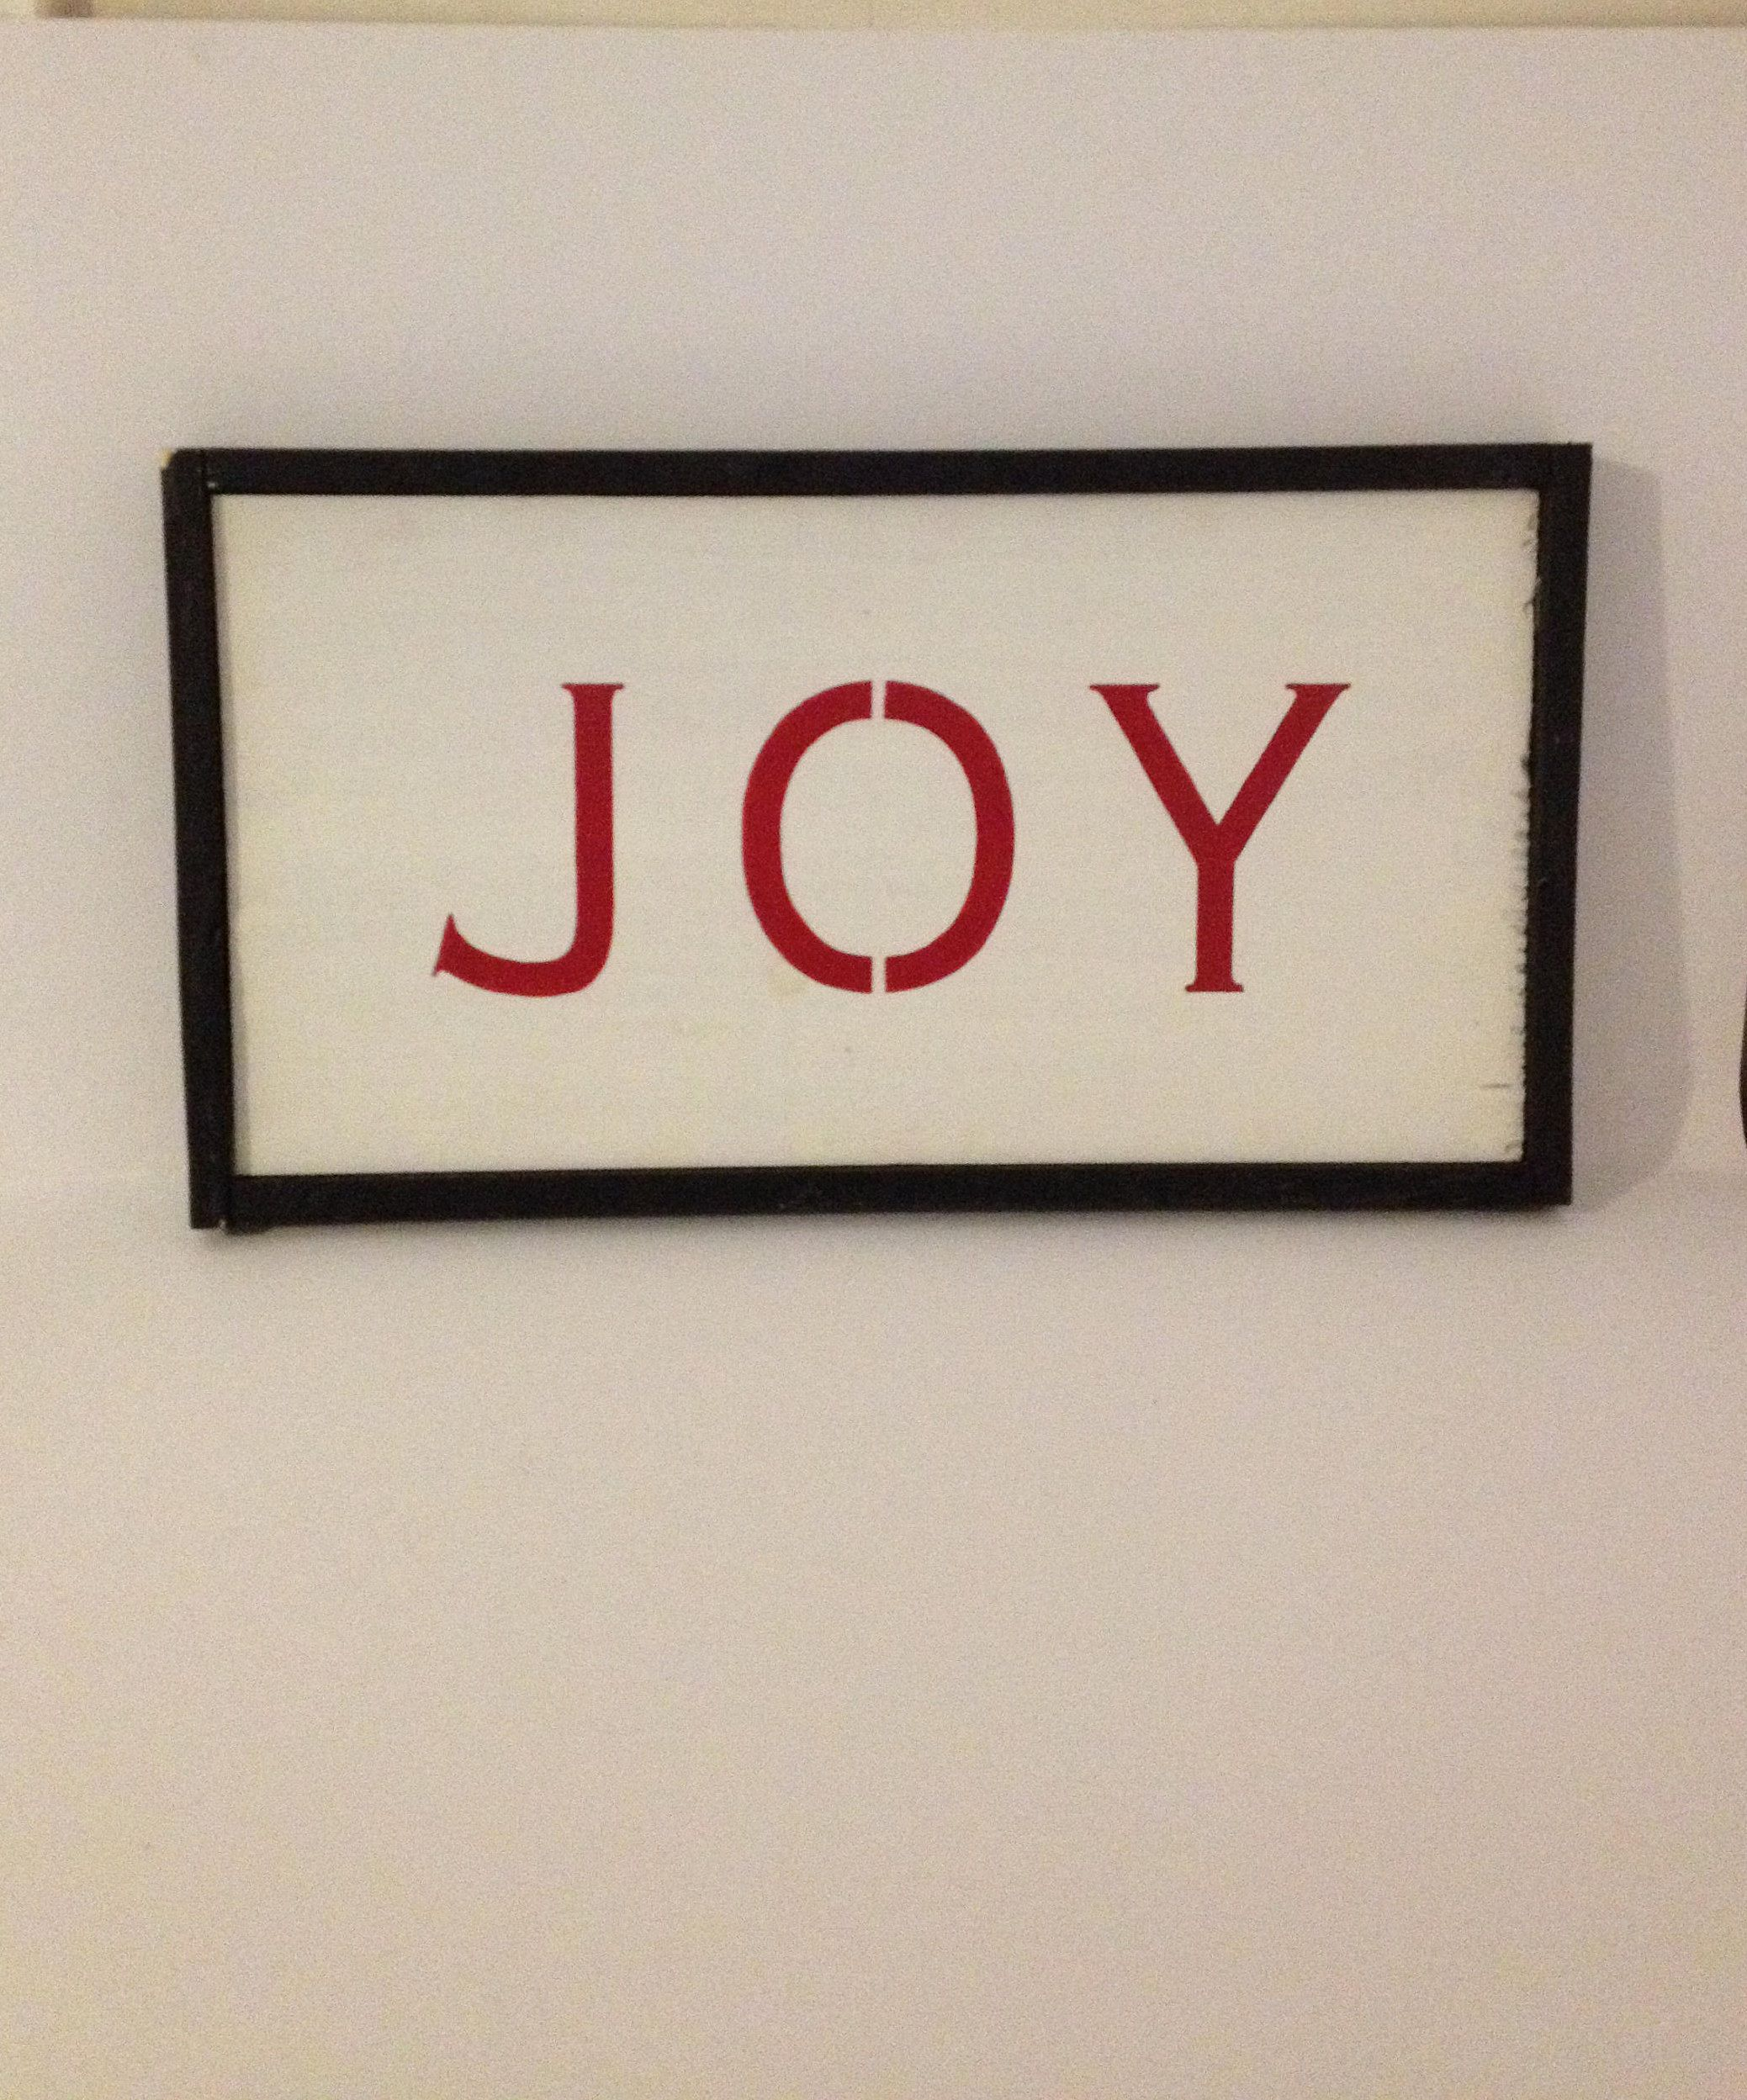 Hand crafted distressed rustic wood christmas ujoyu sign hand